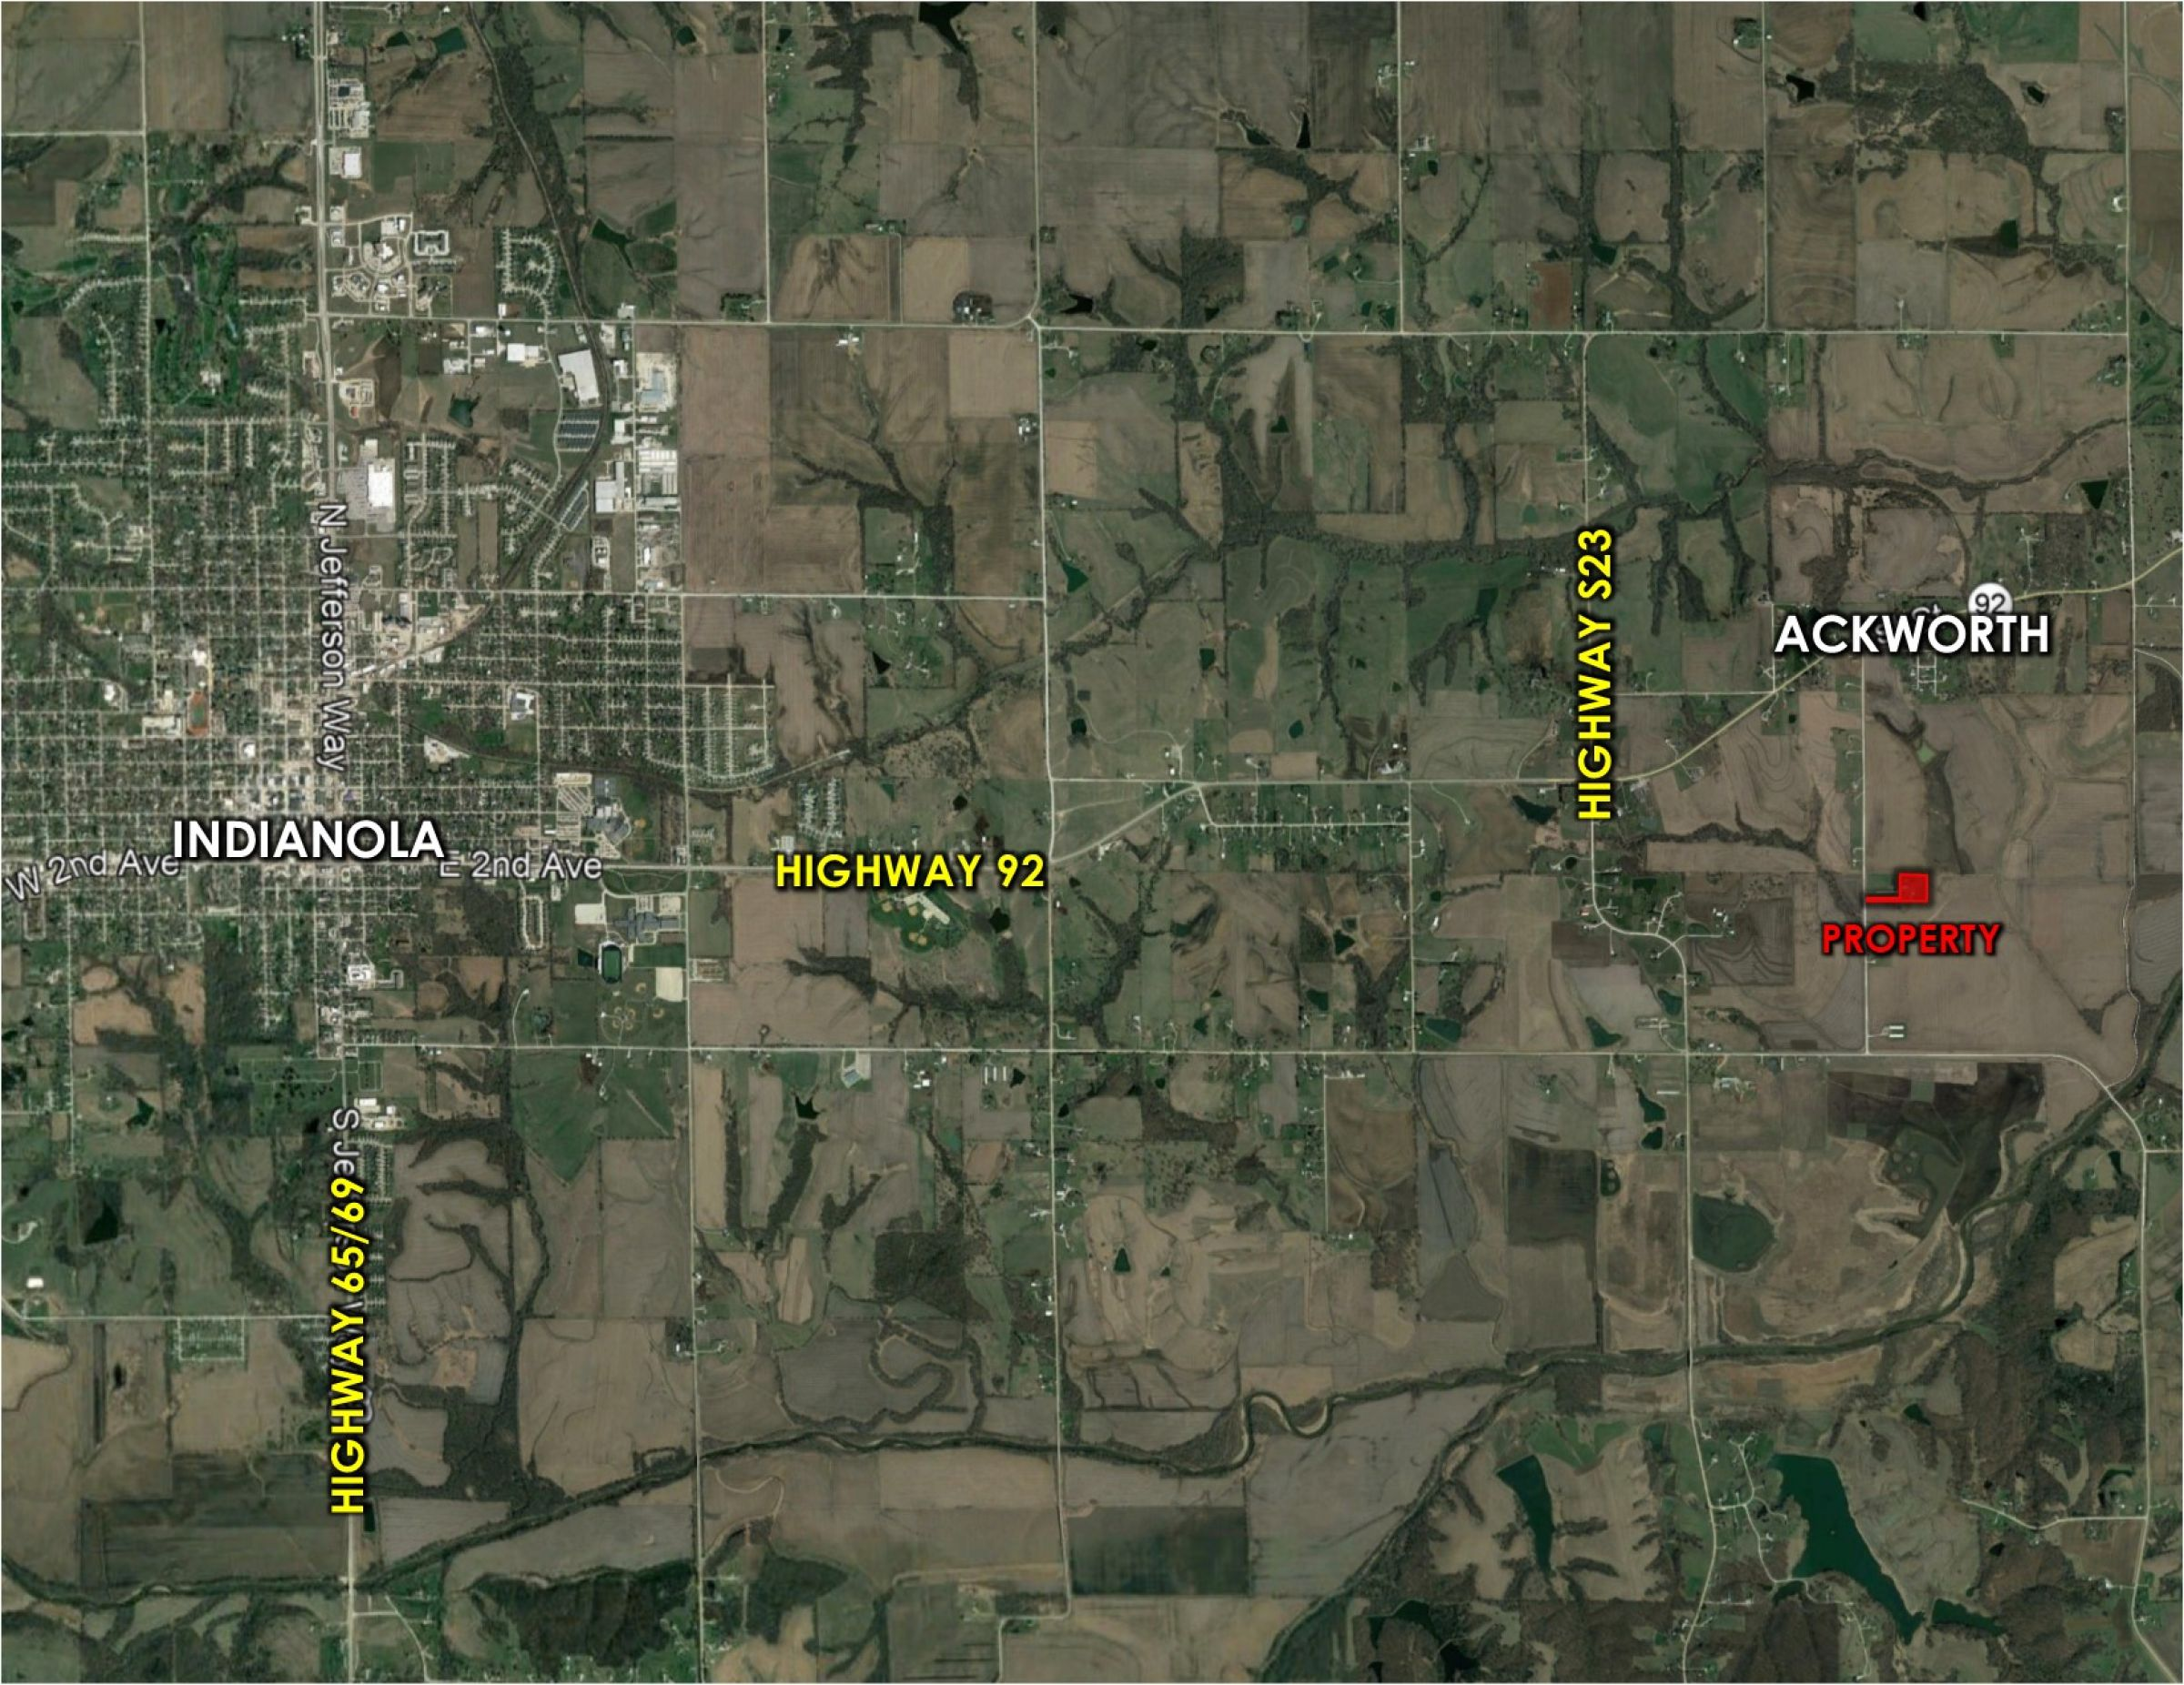 Peoples Company Land for Sale - 14623-11557-173rd-avenue-ackworth-50001